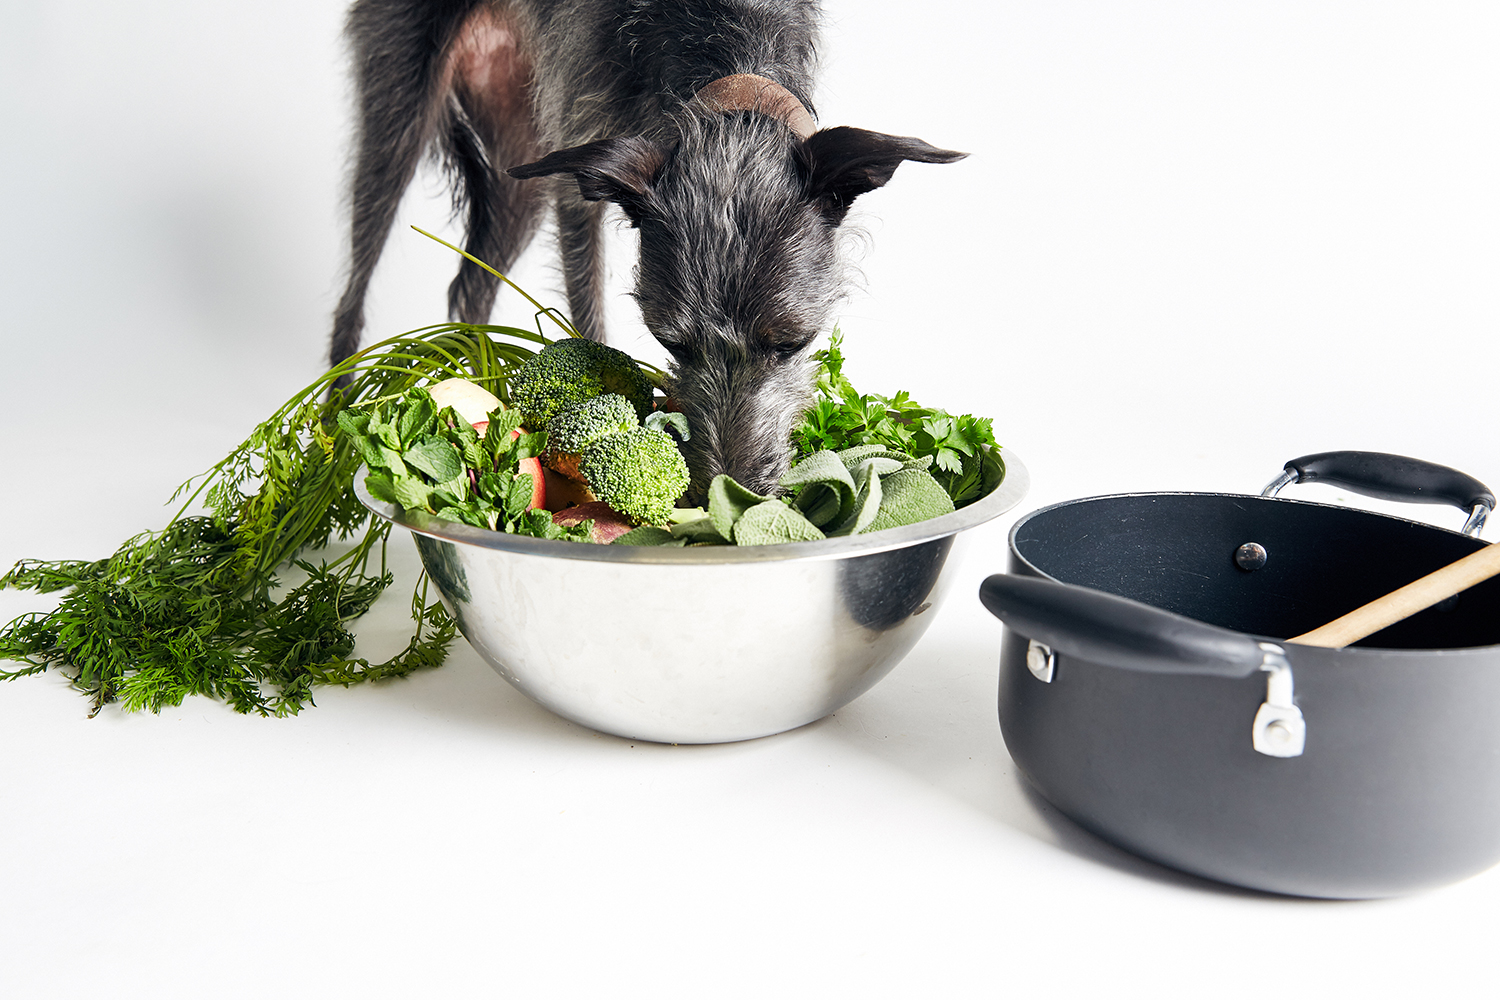 What Is The Best Diet For Dogs?